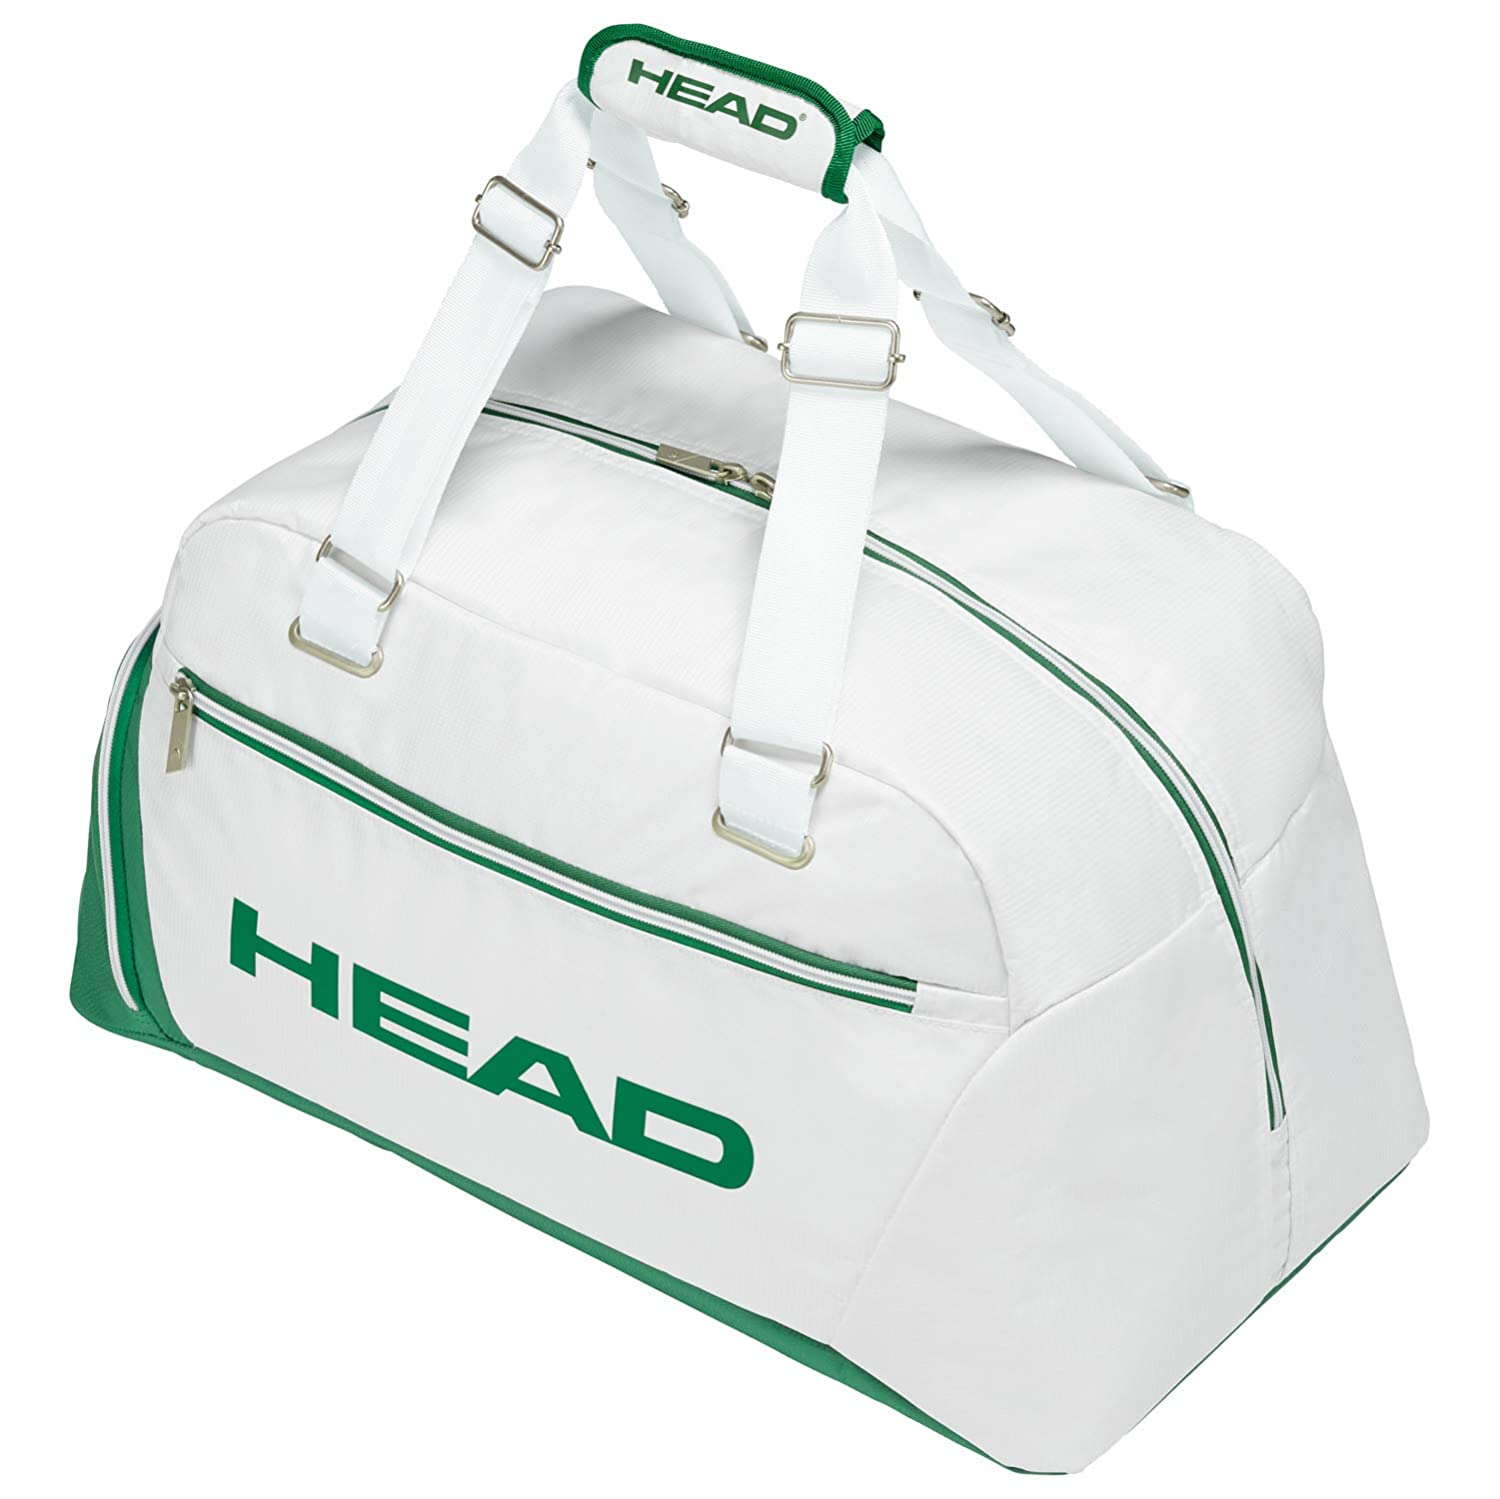 Head PALETERO Tour Team Court Blanco Verde: Amazon.es: Deportes y ...